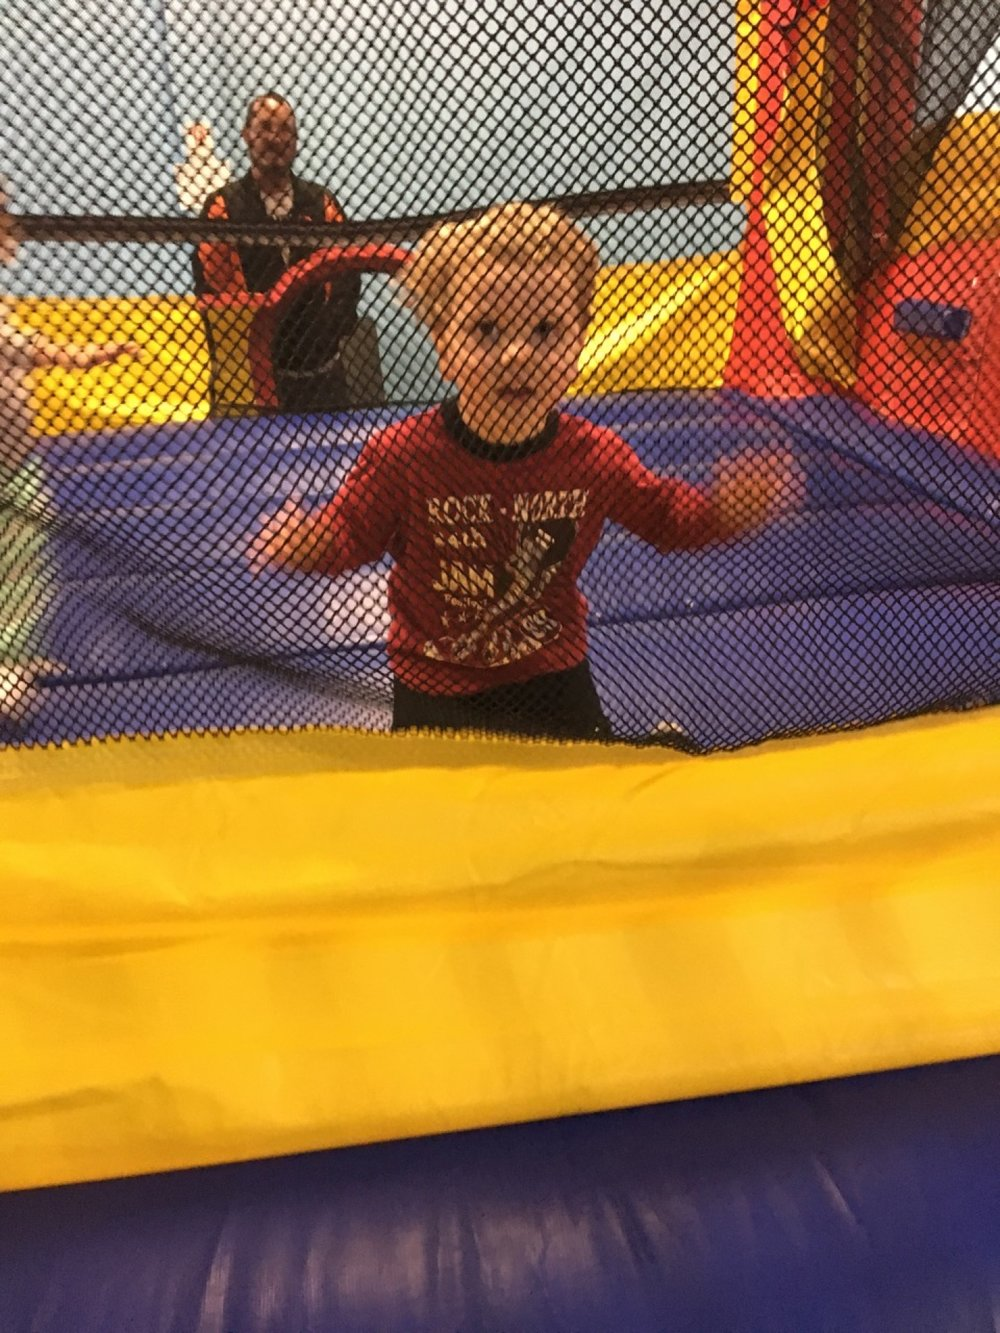 Loves the bounce house (February 2017)